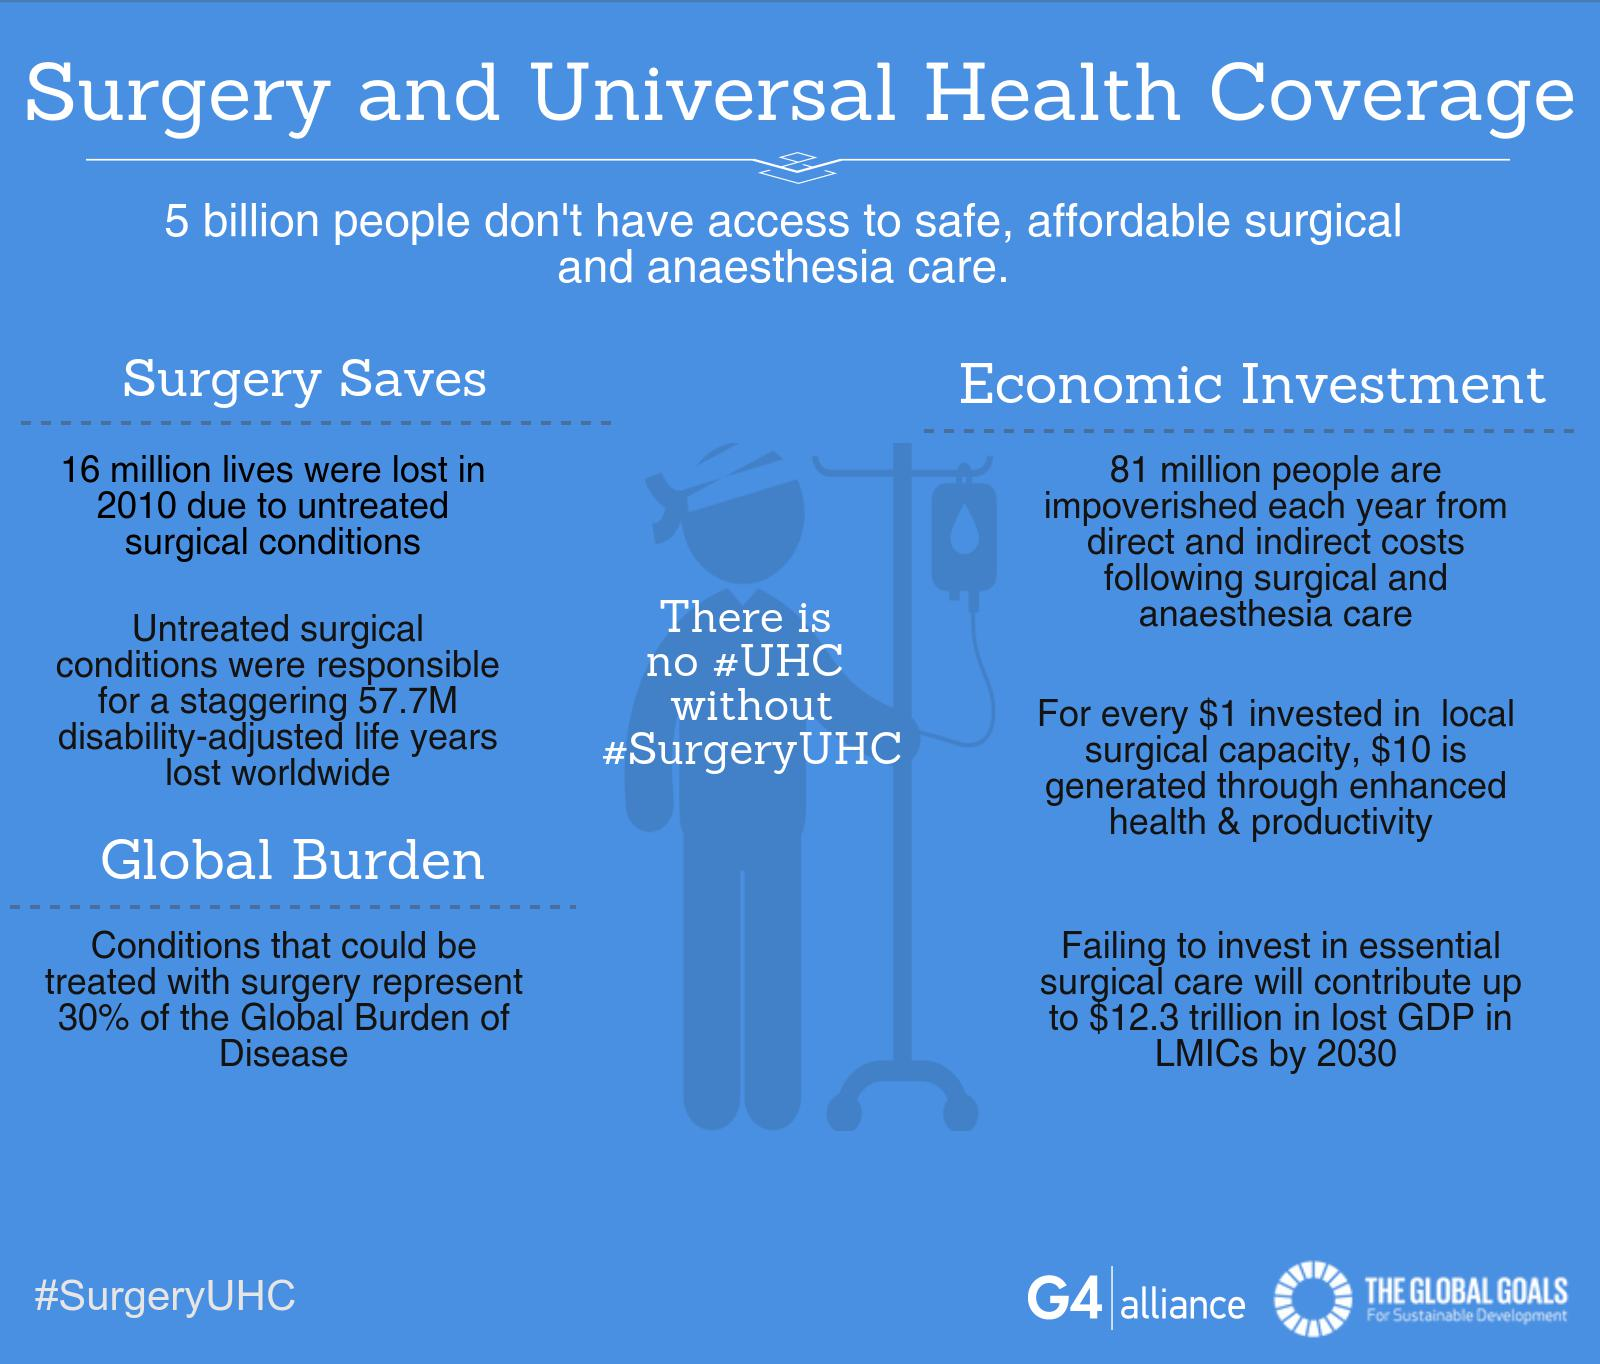 There is no #UHC without #SurgeryUHC!